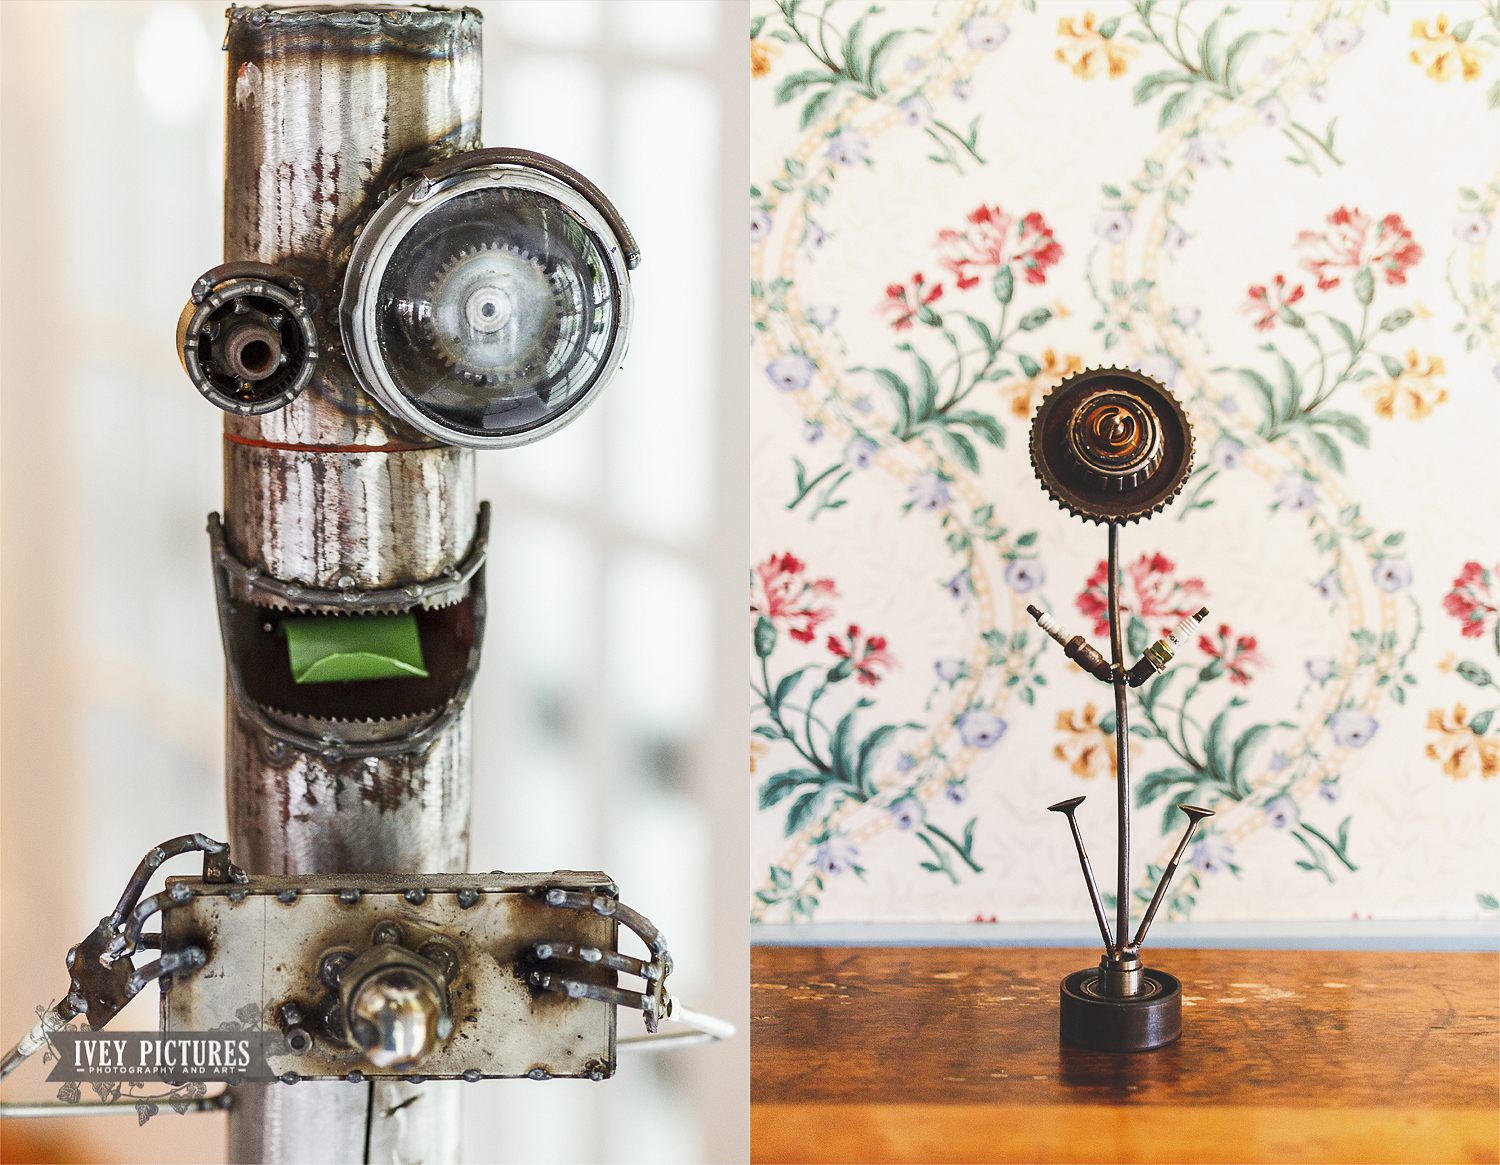 Anthony made all of the centerpiece flowers for the tables from old car parts. He also made this little monster with a camera for us!